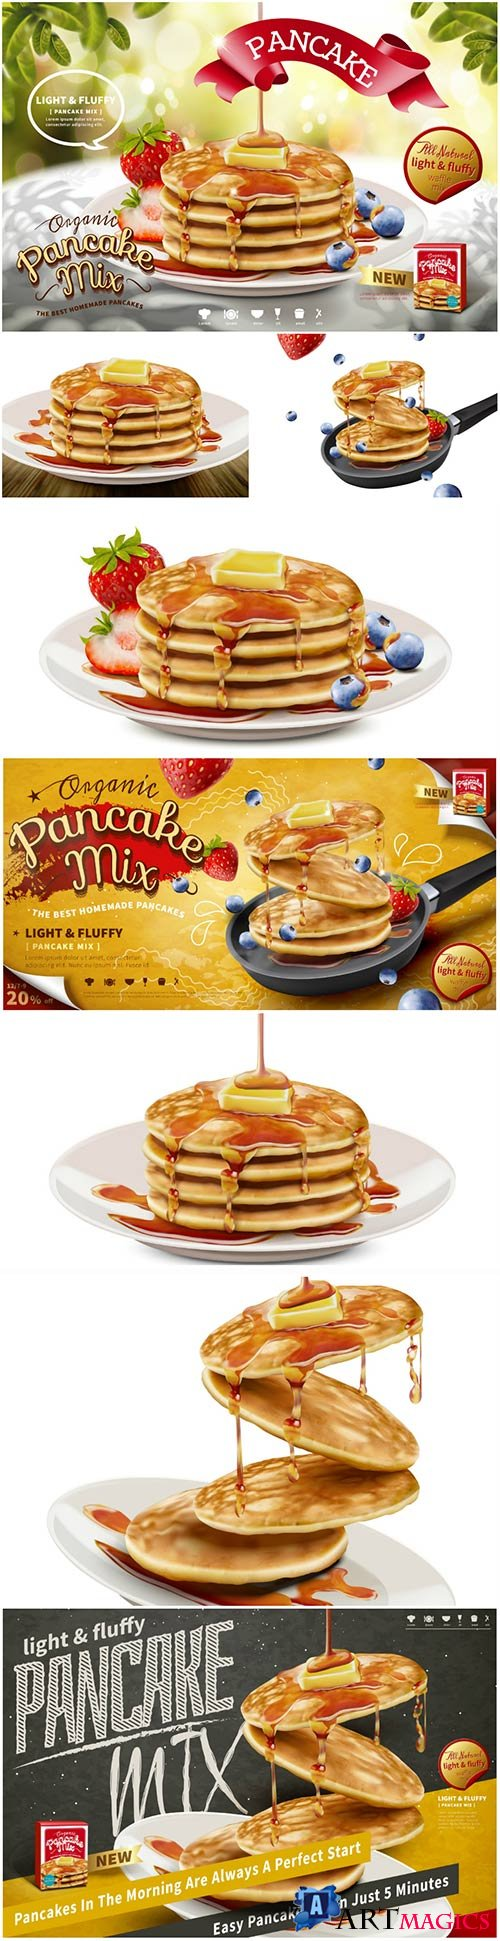 Delicious fluffy pancake ads in 3d vector illustration